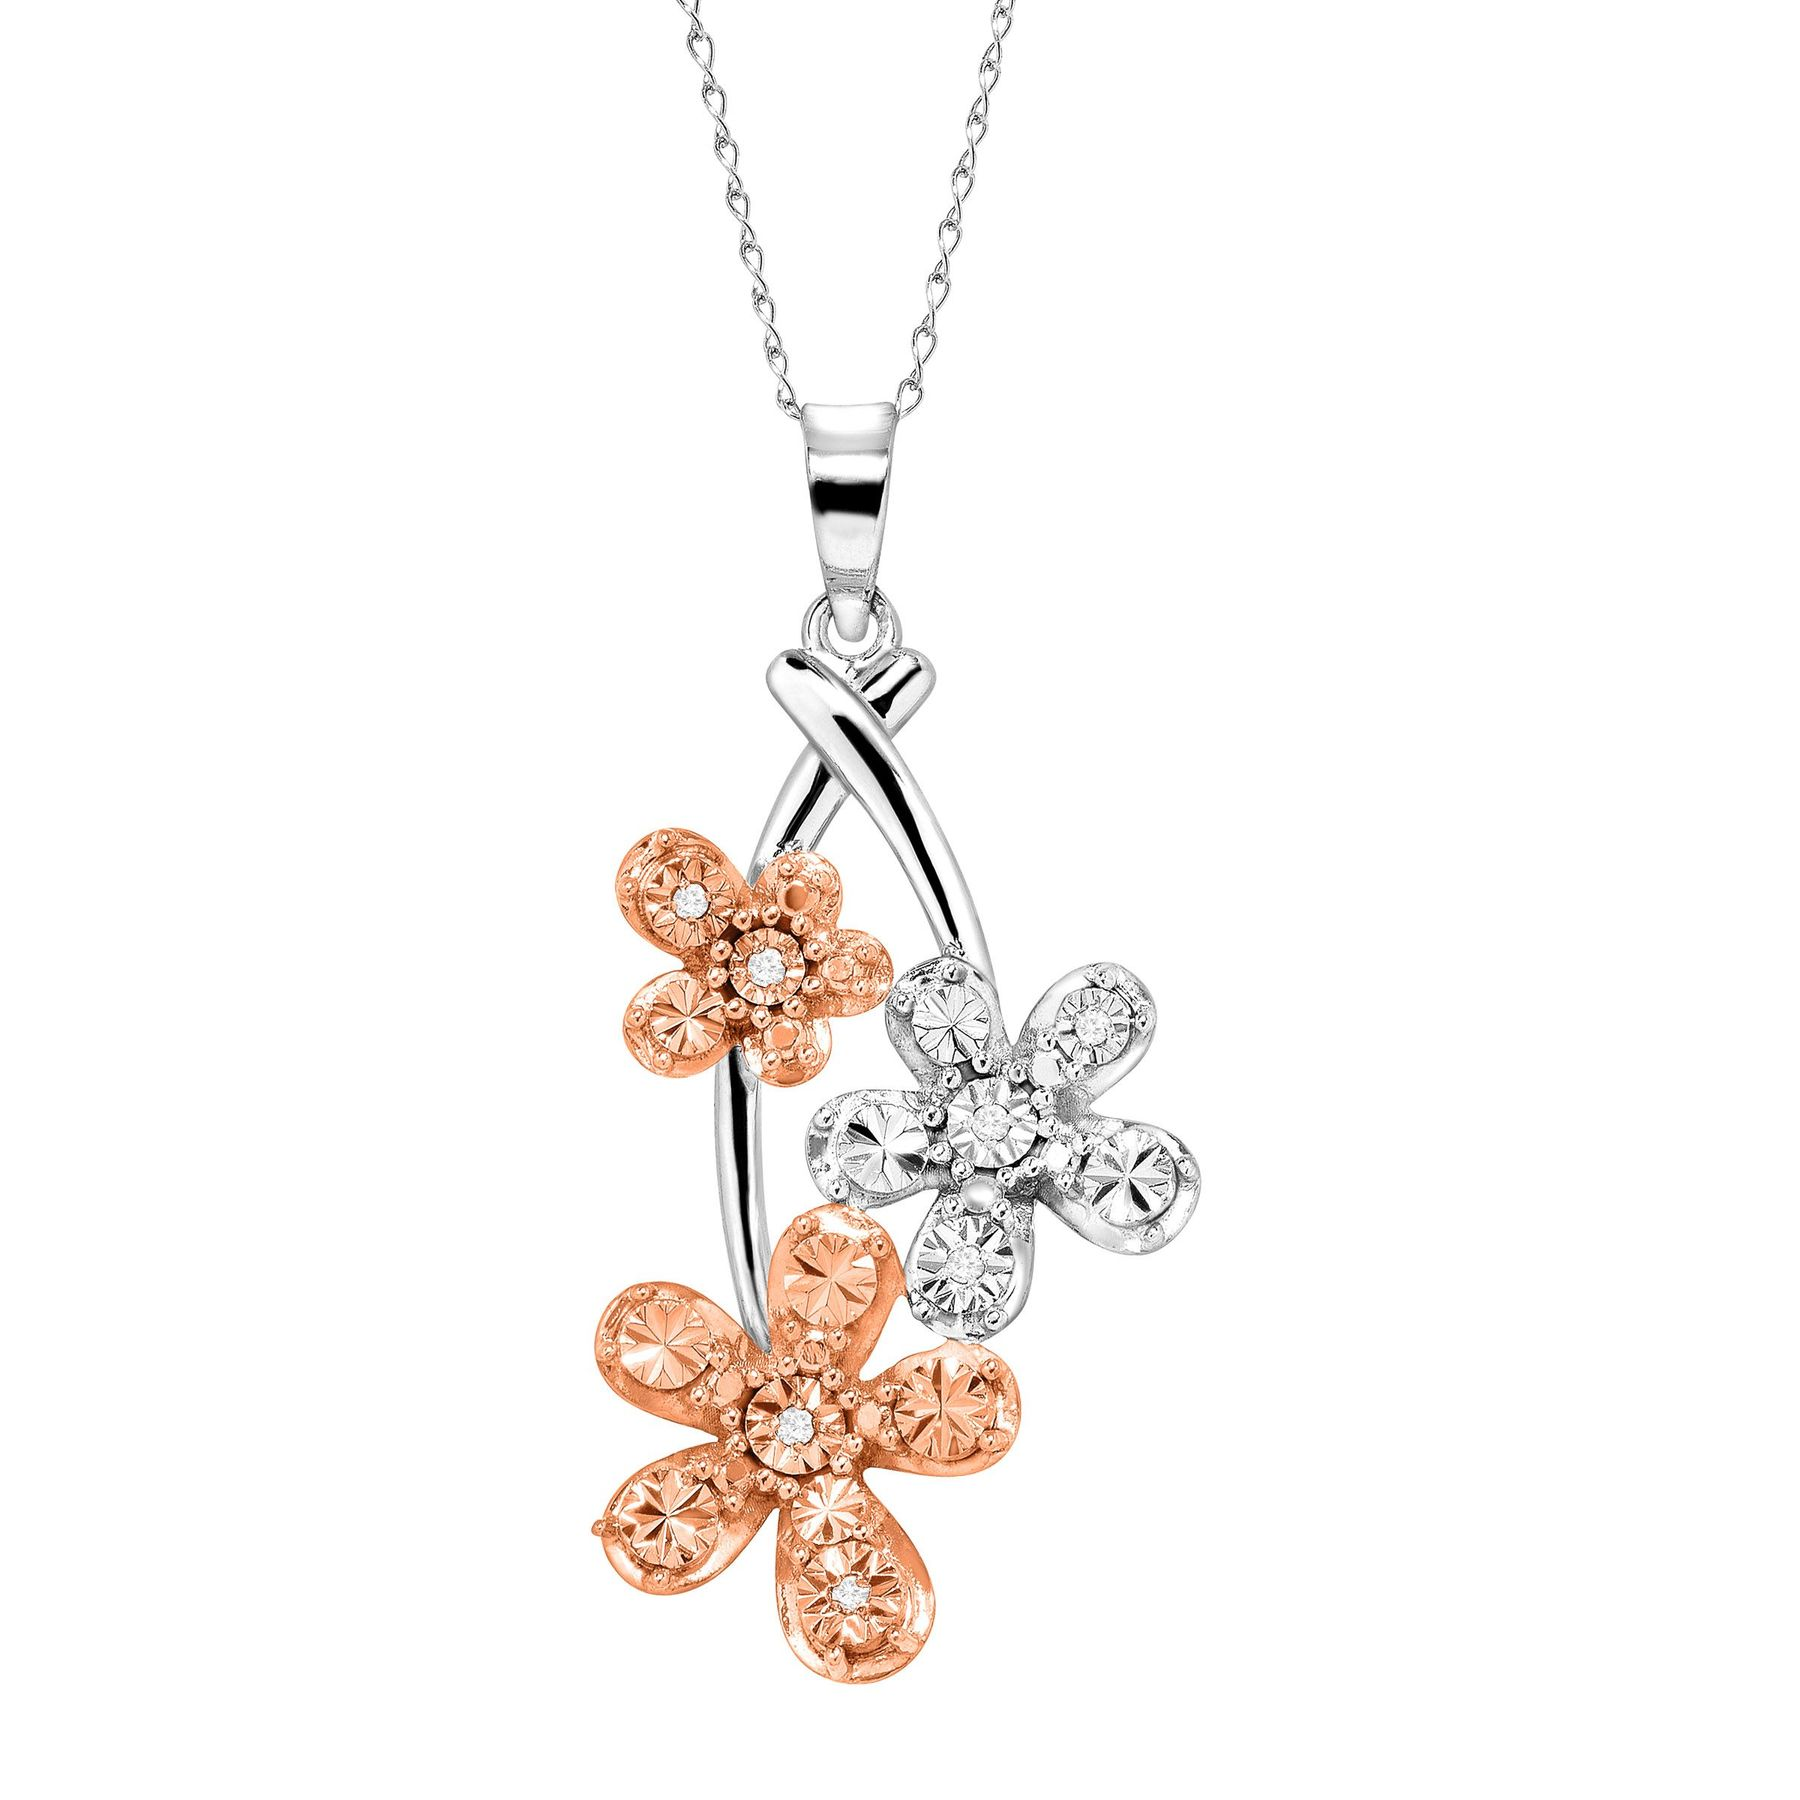 designs product gold kc diamond pendant necklace flower white